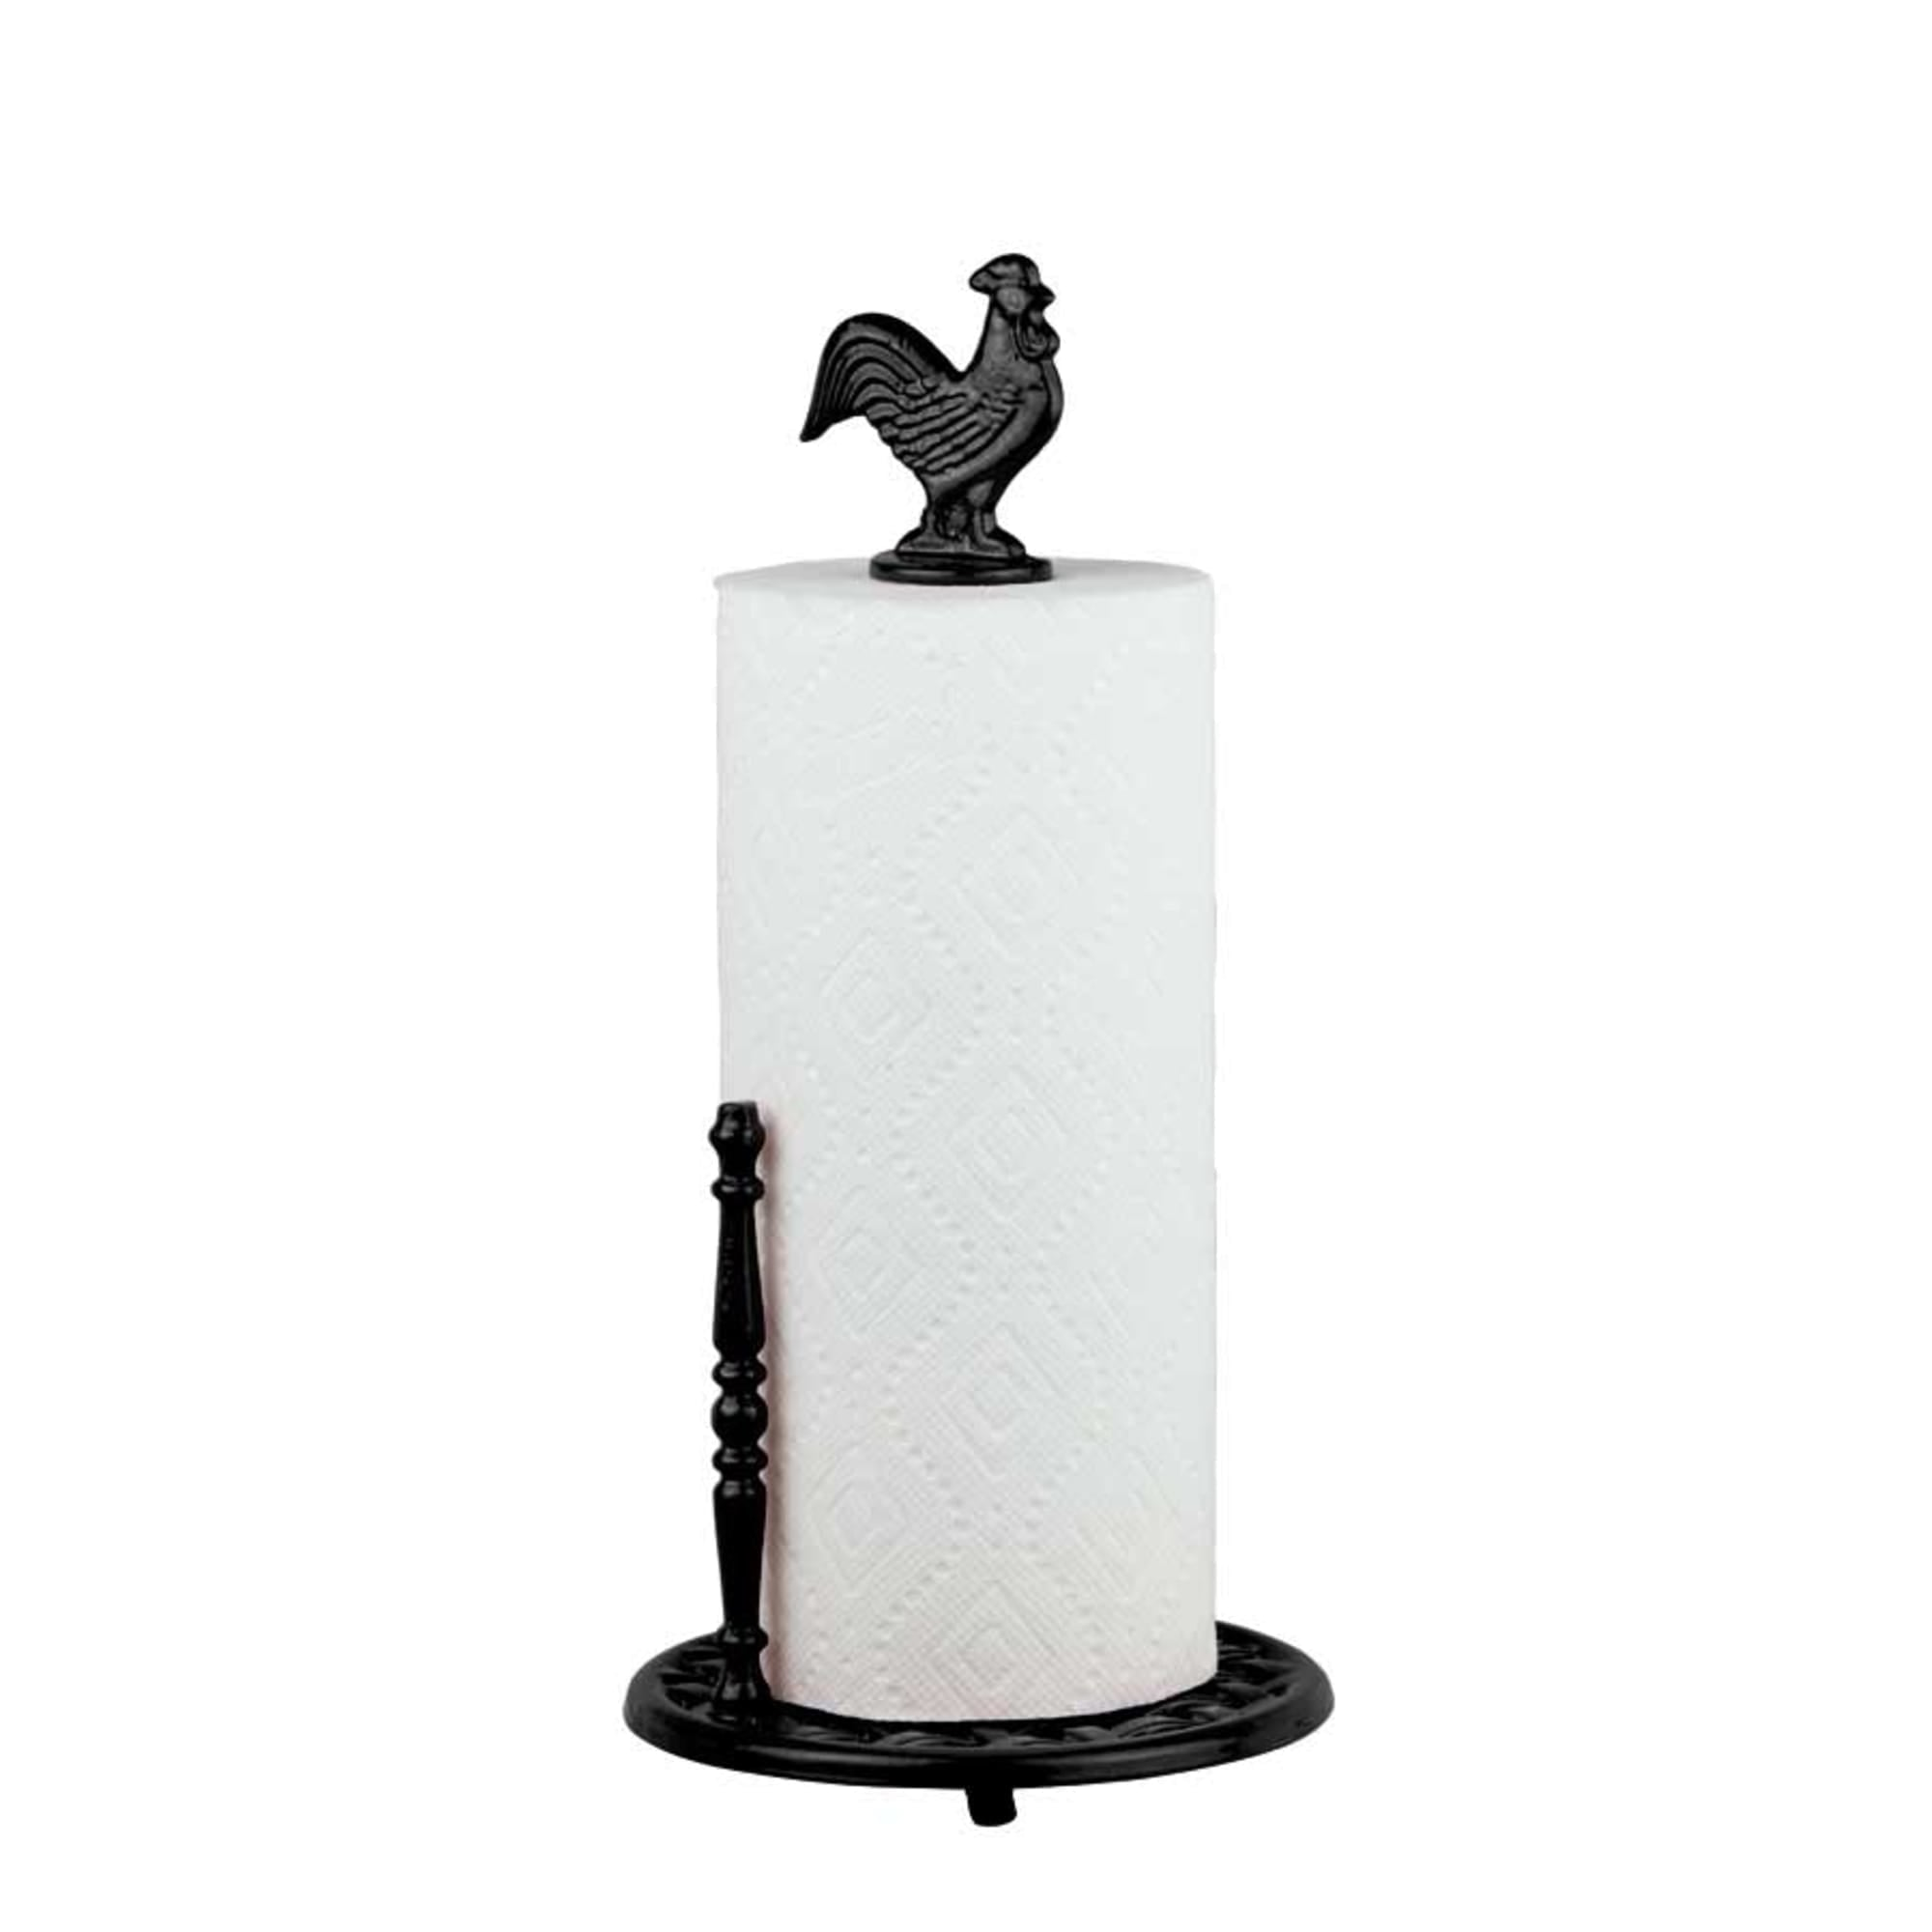 Cast Iron Rooster Paper Towel Holder, Black